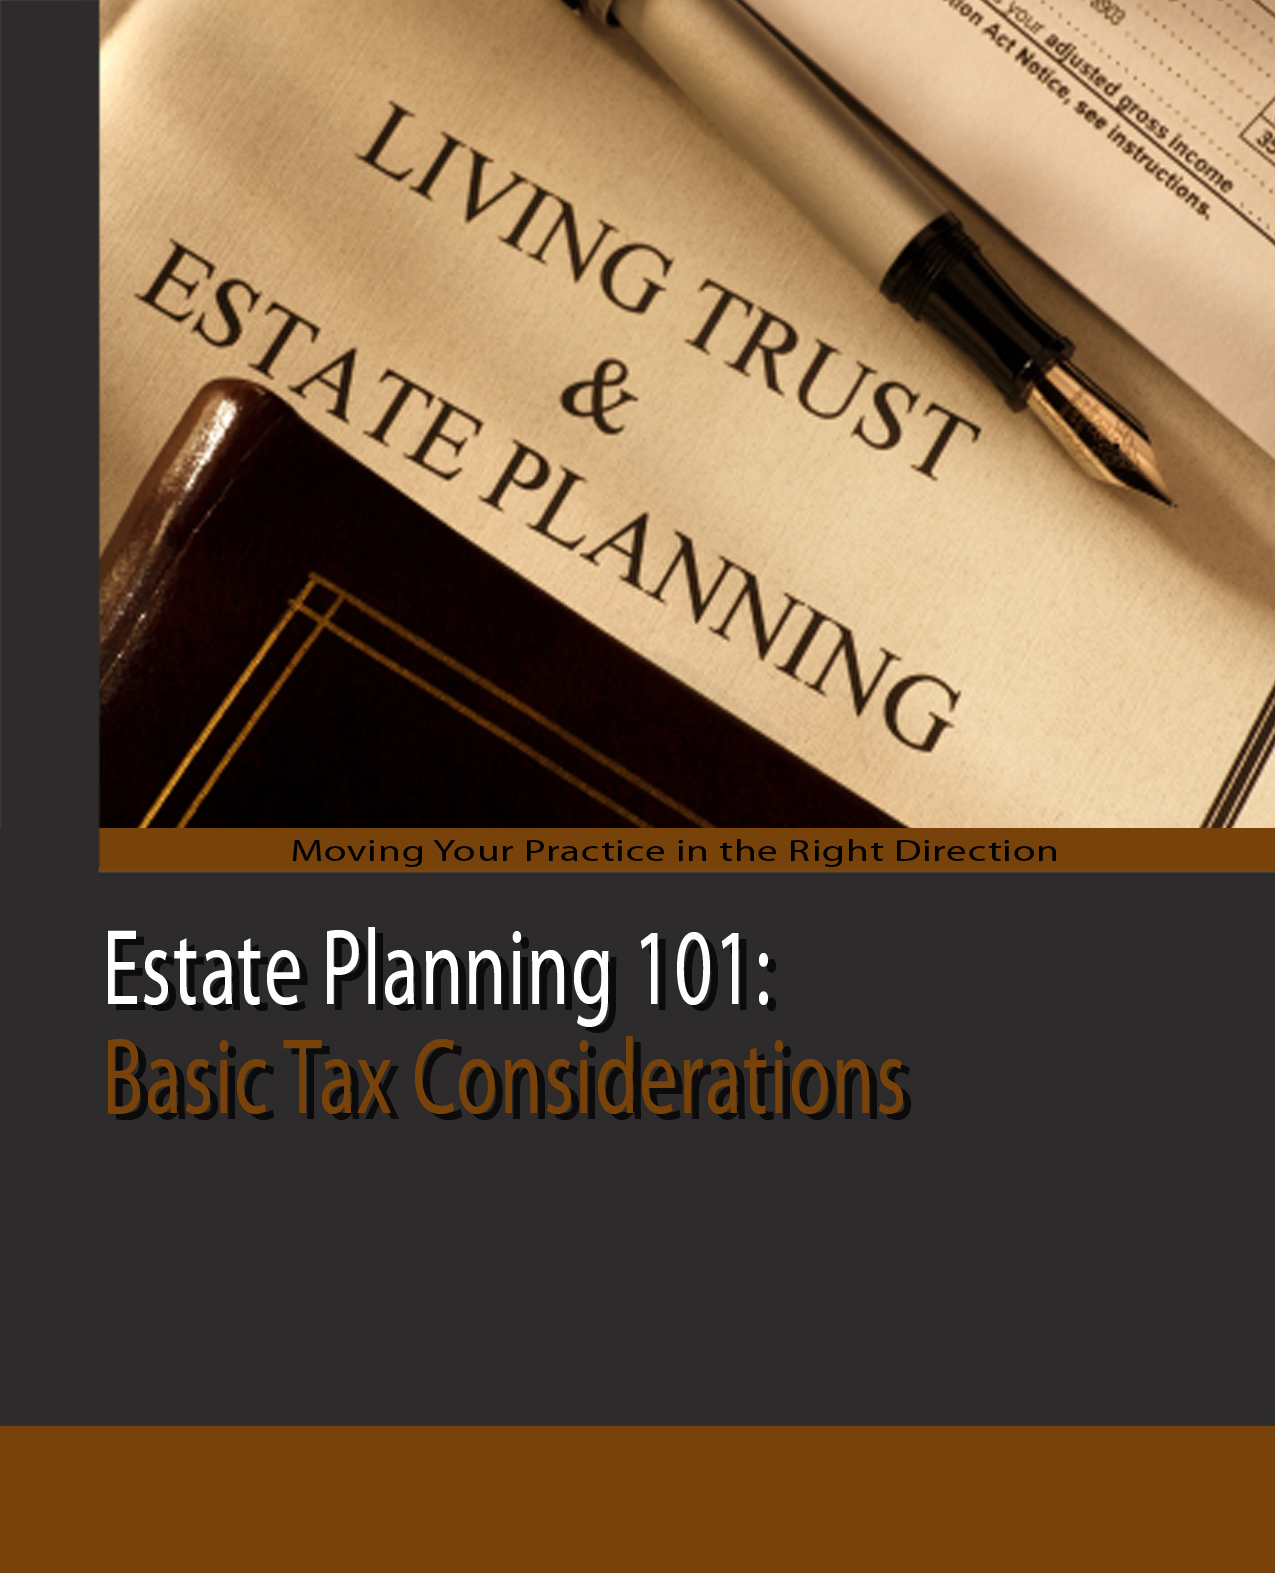 Estate Planning: The Basic Tax Considerations Of Estate Planning